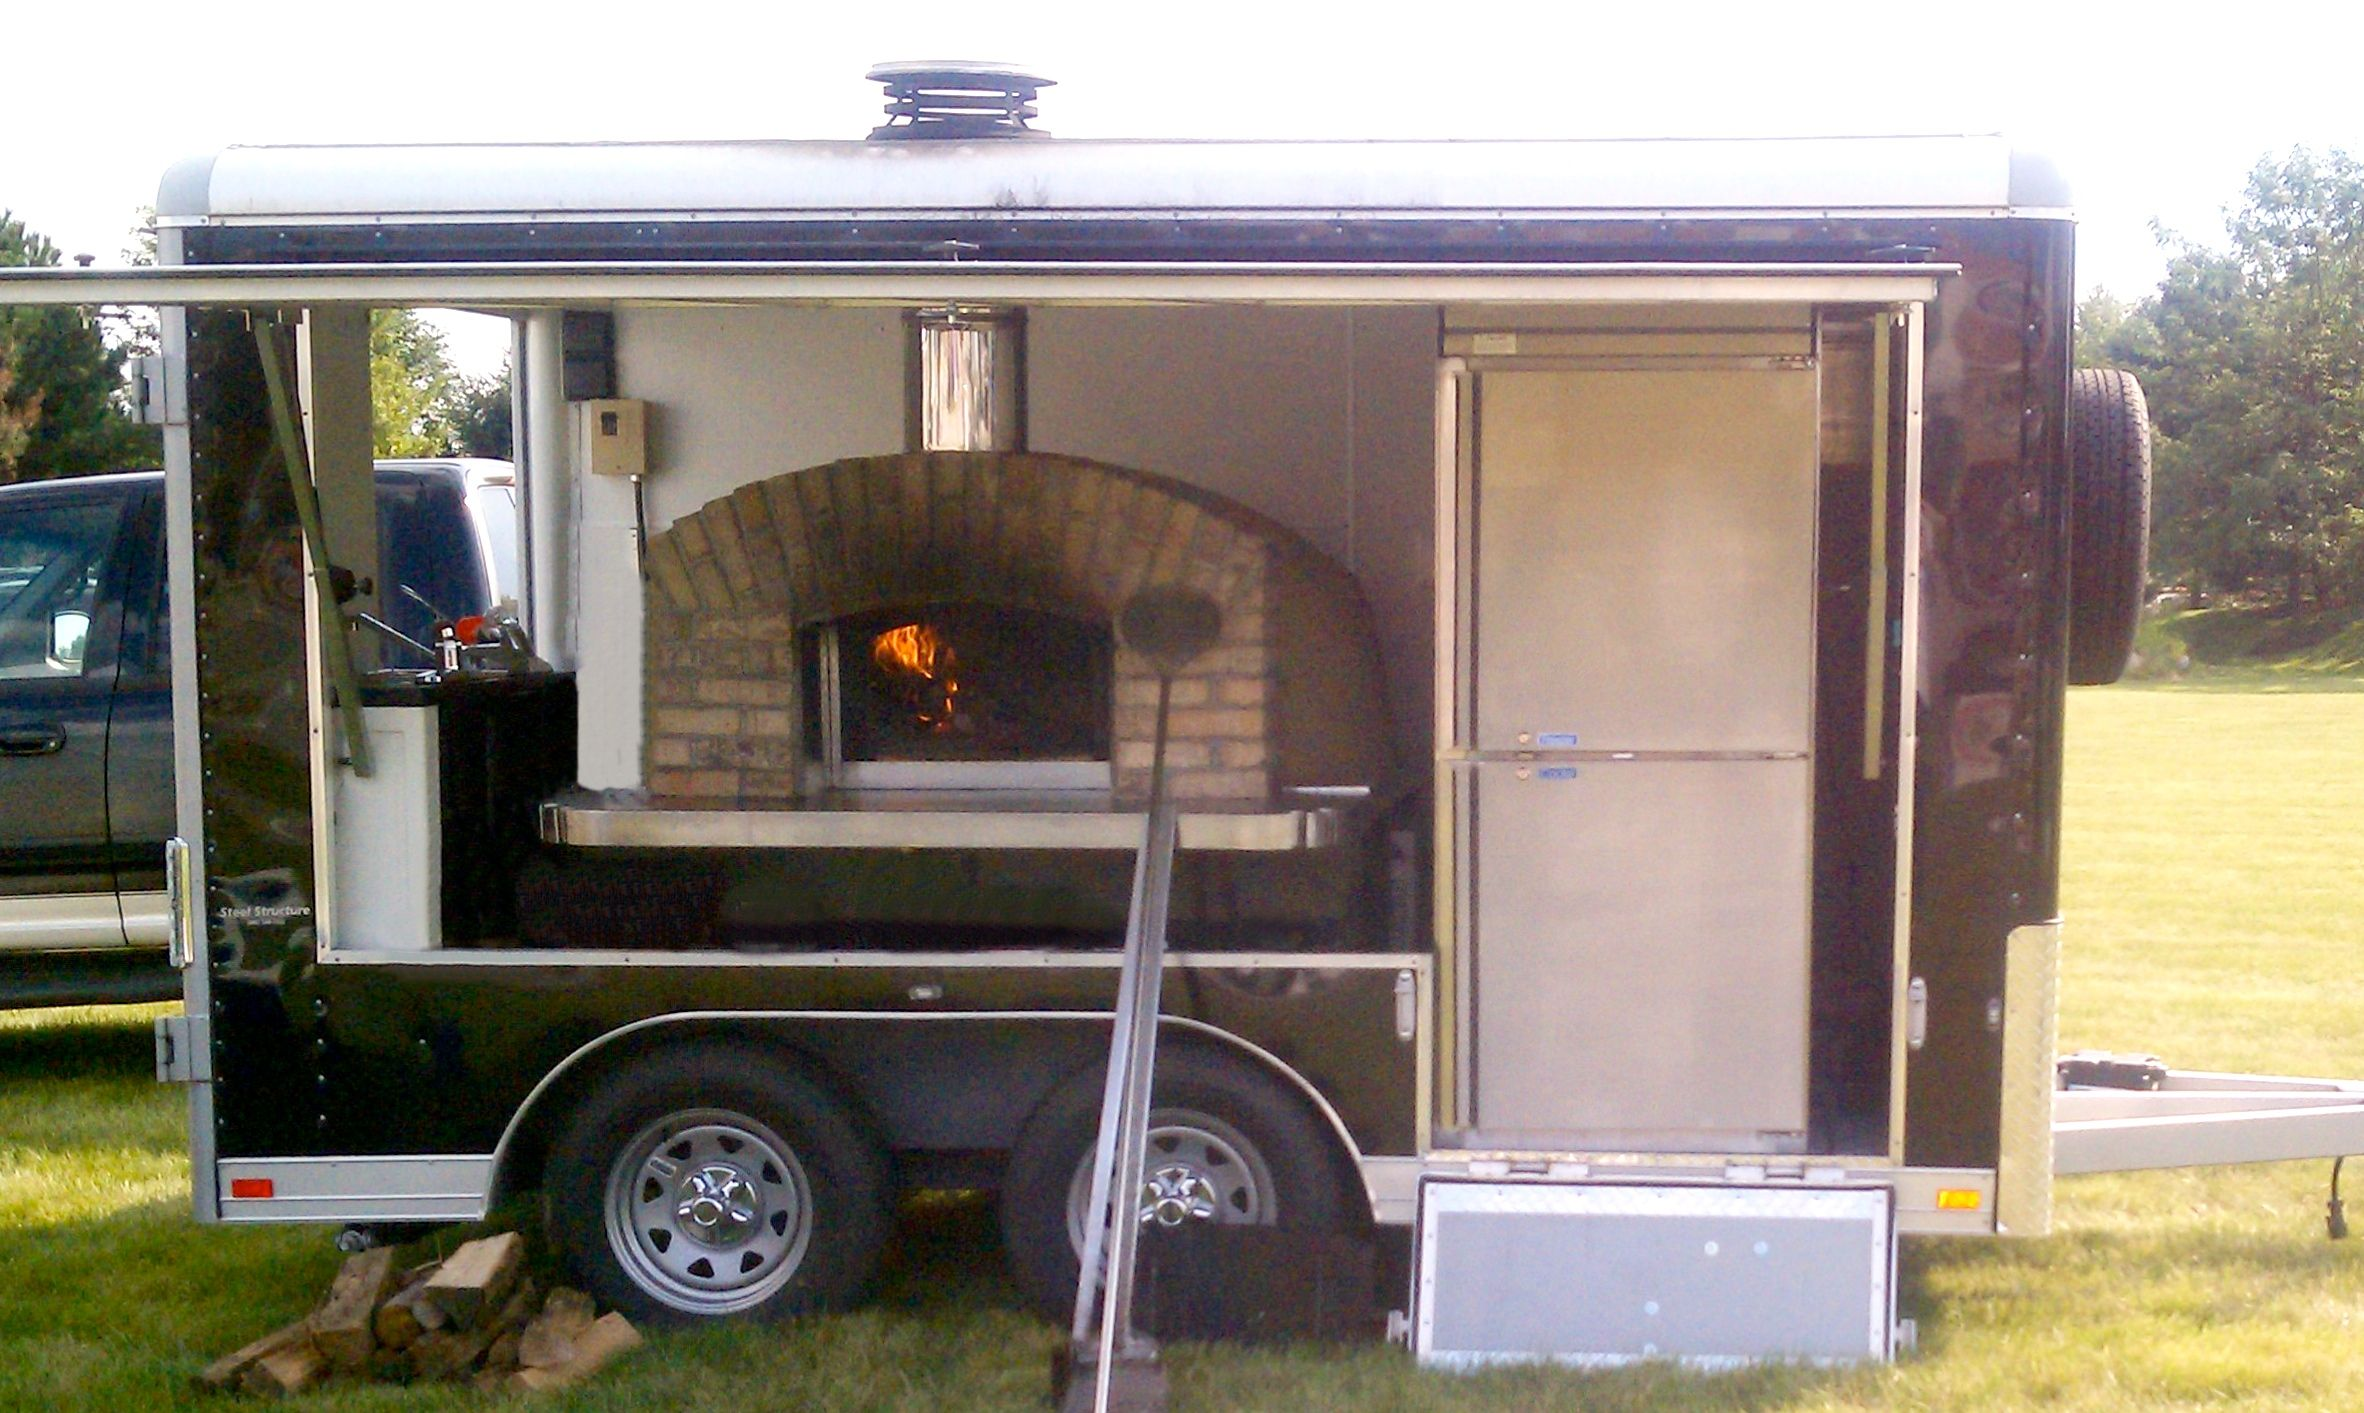 Portable wood fired pizza oven for sale - Pizza Trailer Cucina 12 Jpg 2364 1413 Mobile Pizza Ovenoutdoor